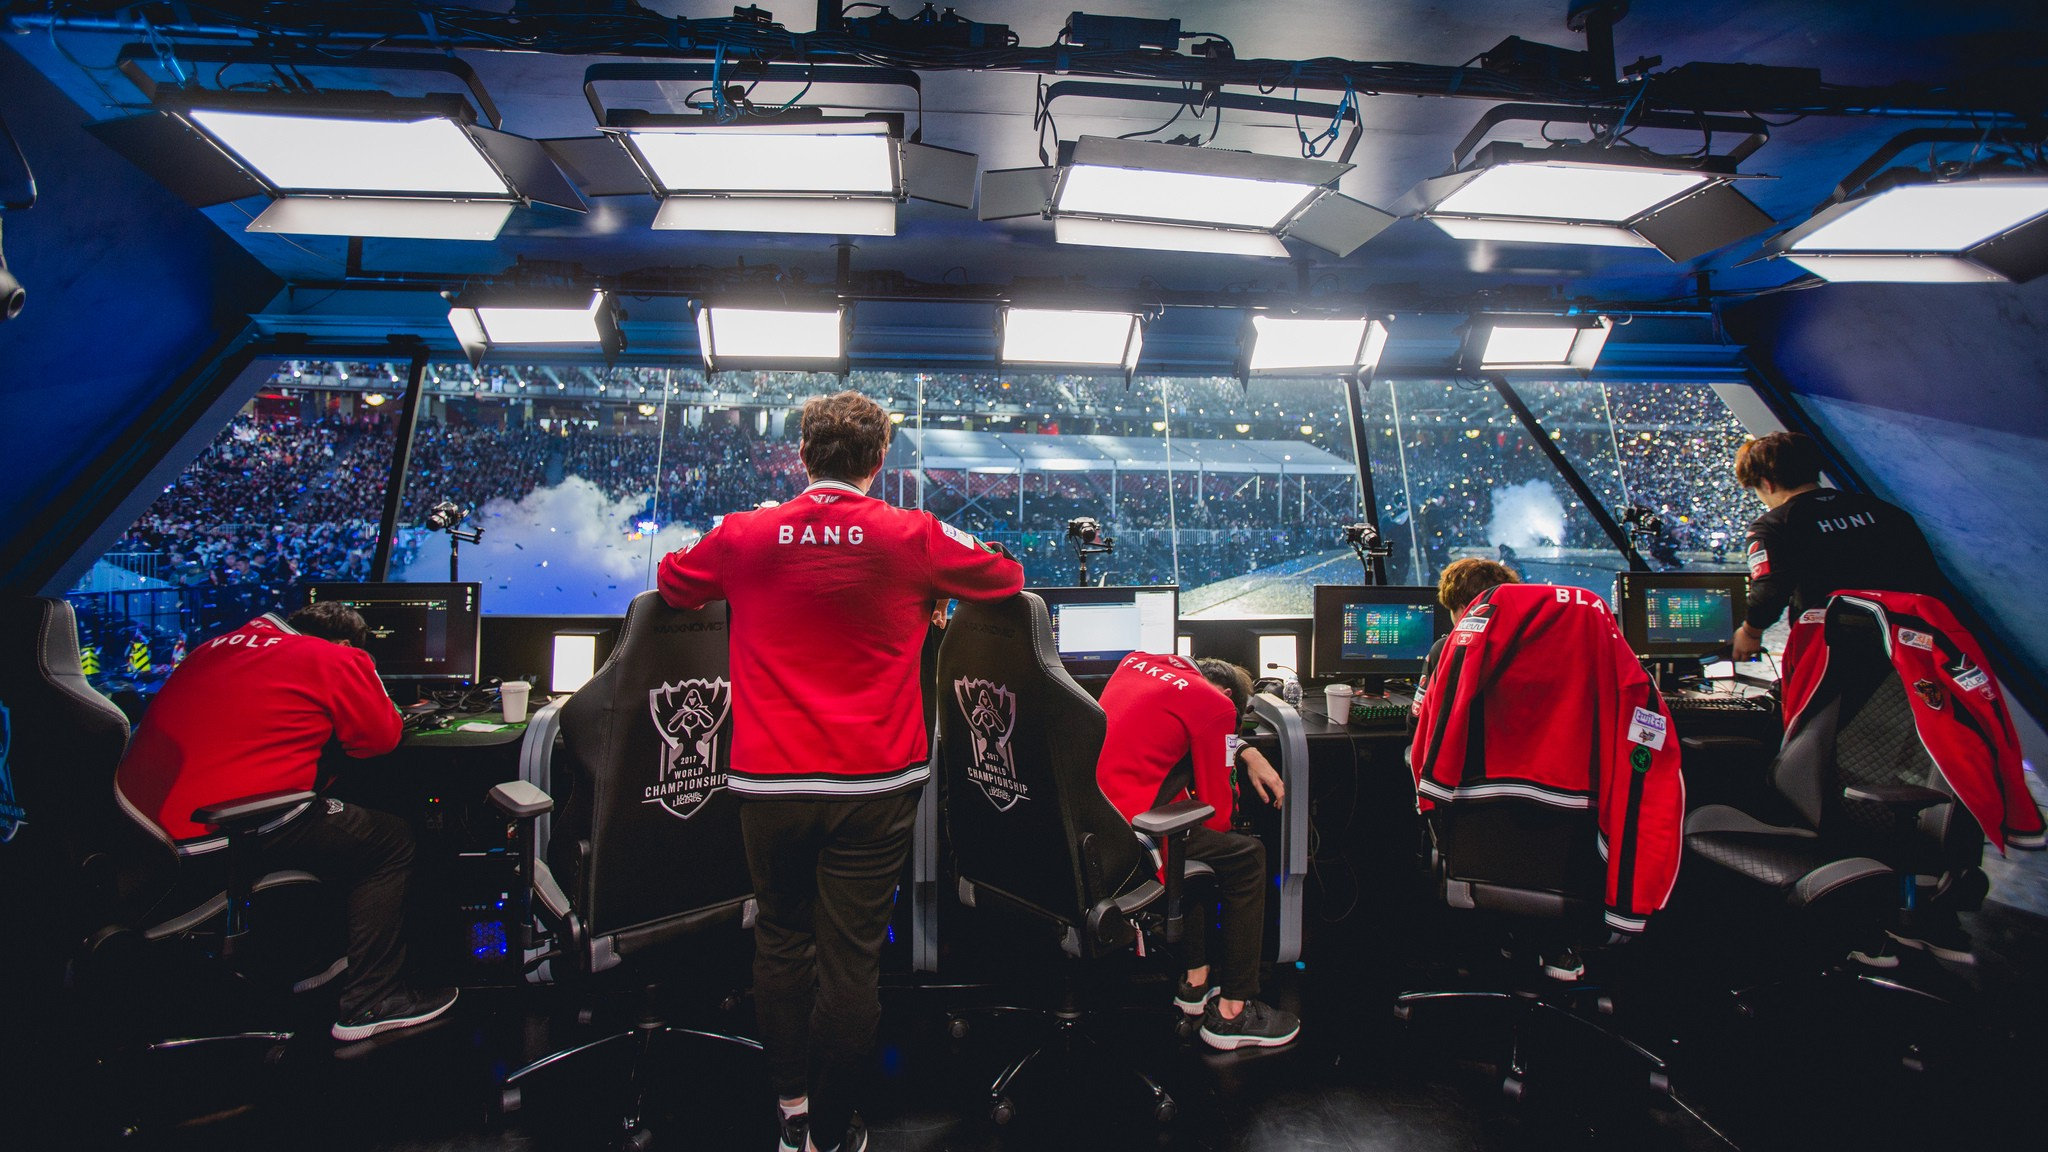 The Team Favored To Win Worlds Almost Never Does Oddoman